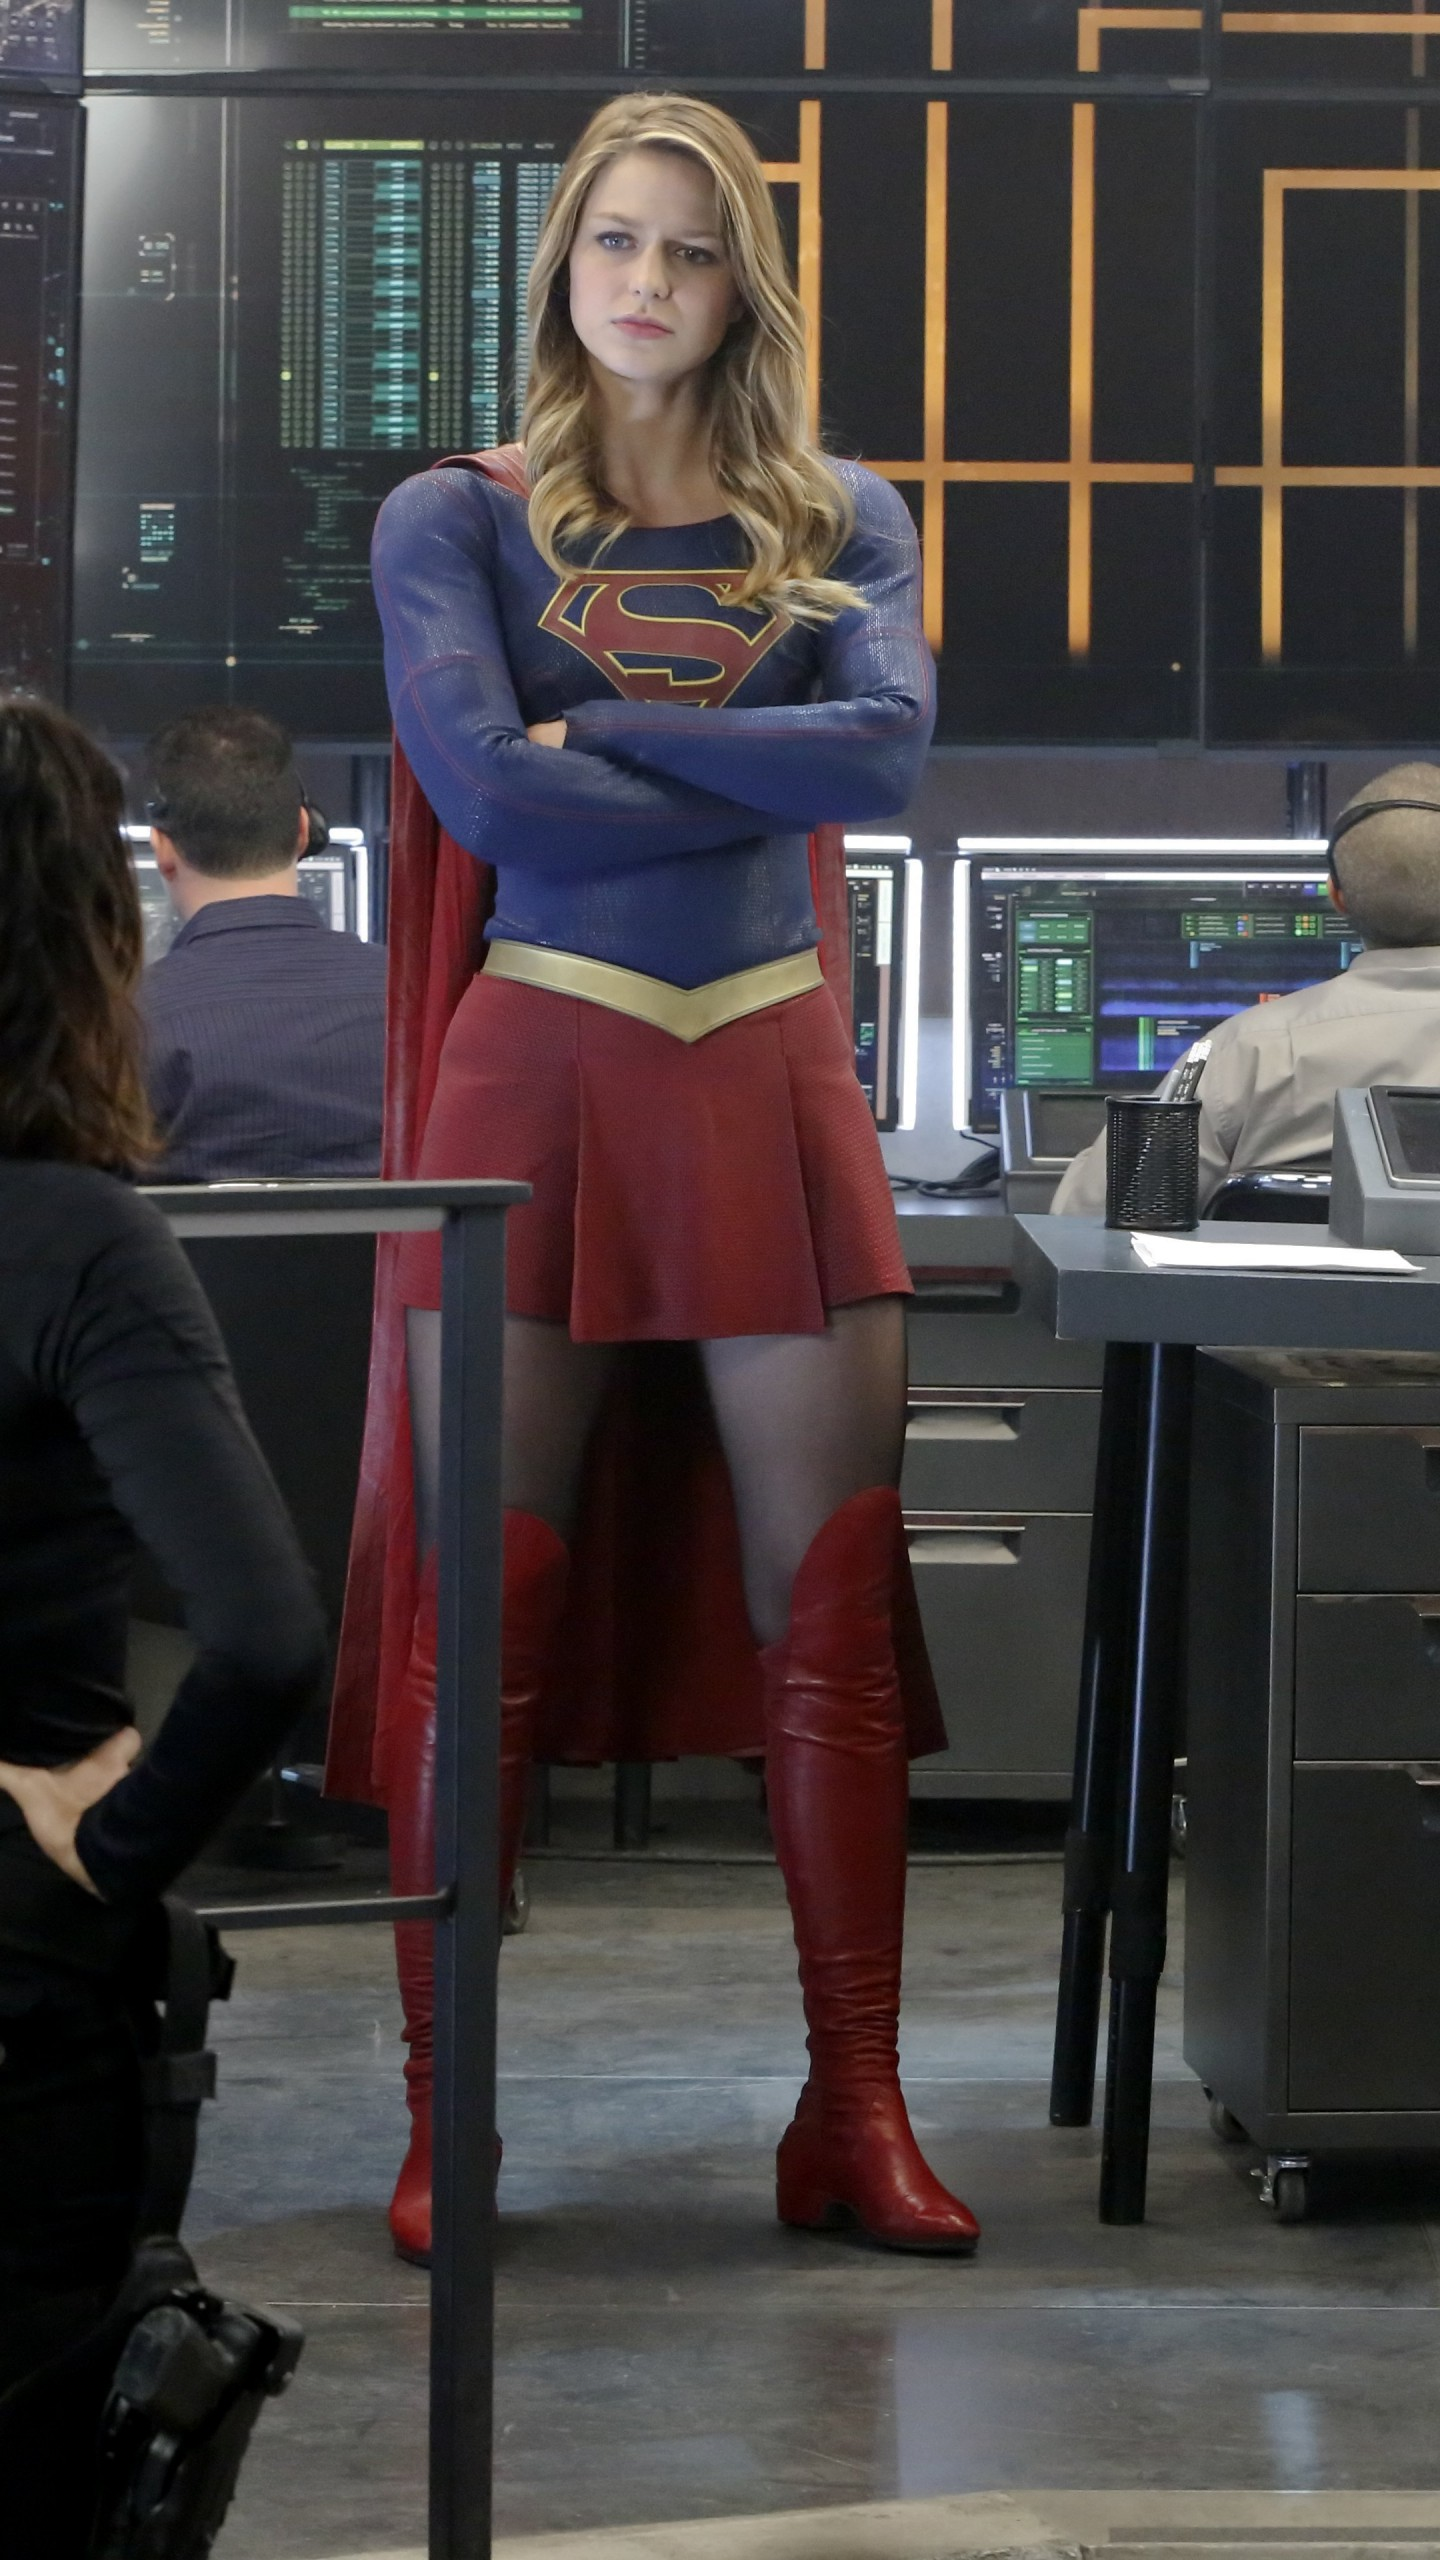 Wallpaper The Flash, Supergirl, Crossover, Grant Gustin